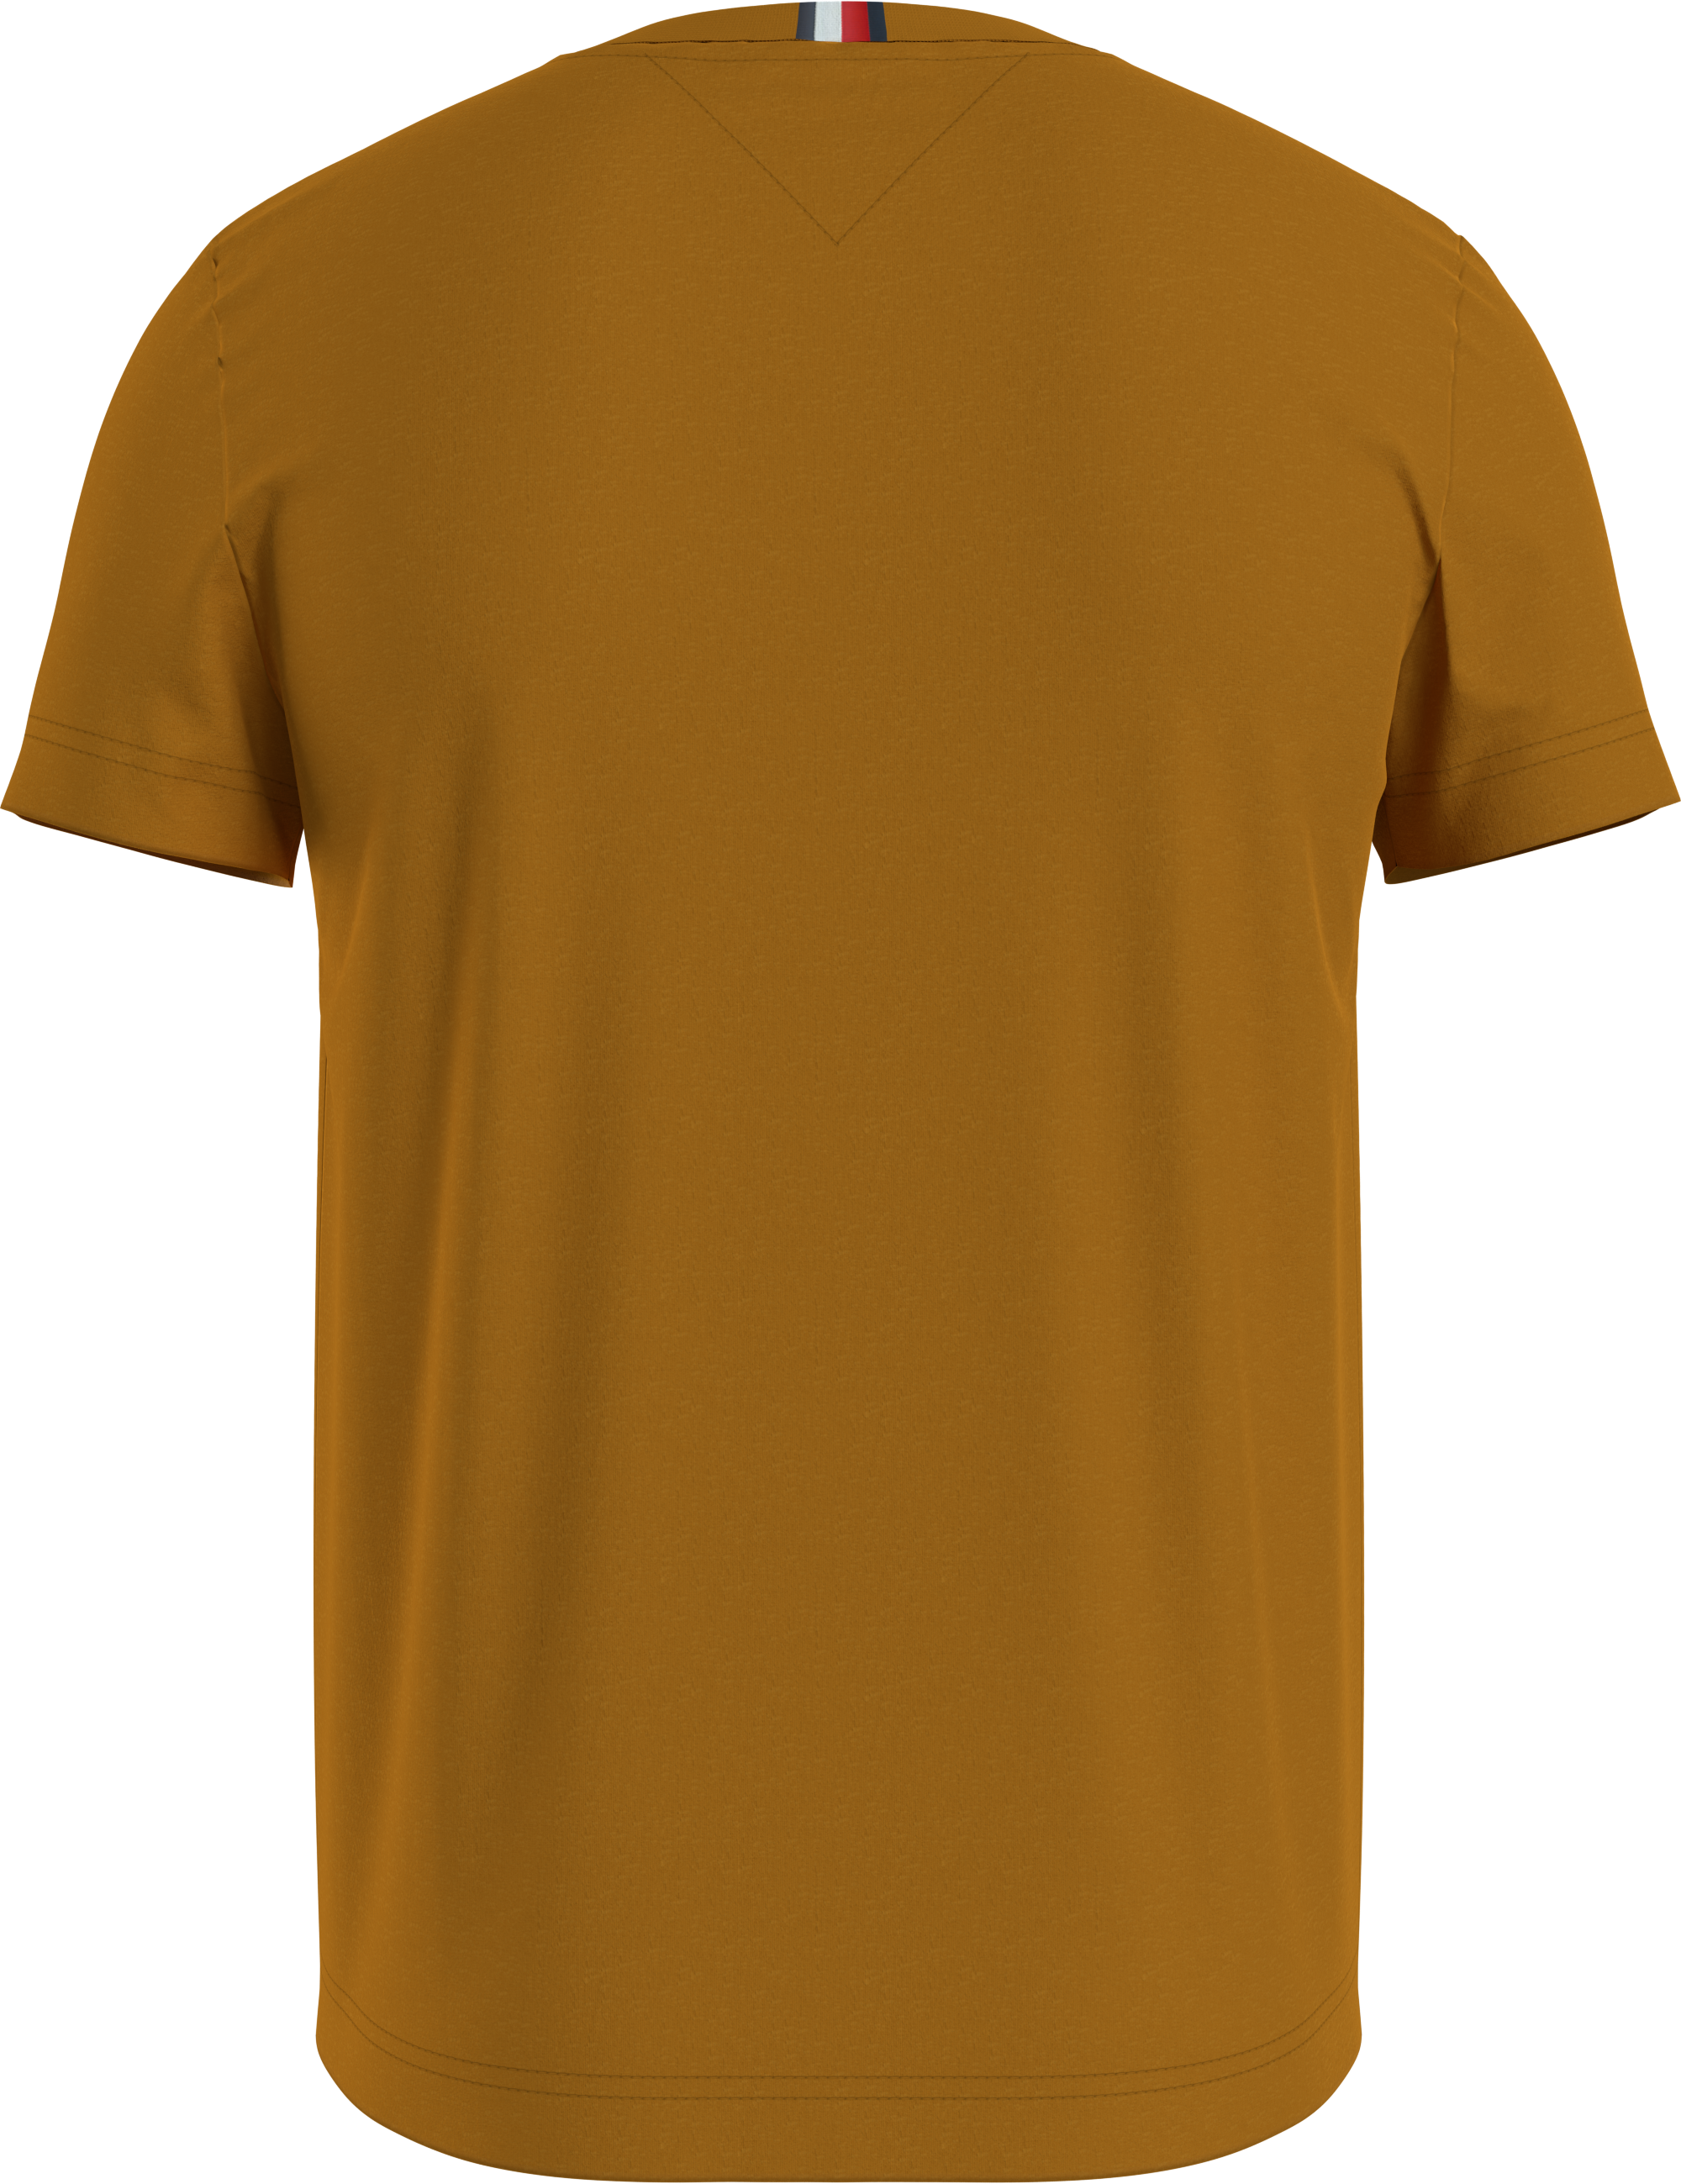 Tommy Hilfiger Peached Jersey T-shirt, Gold, S